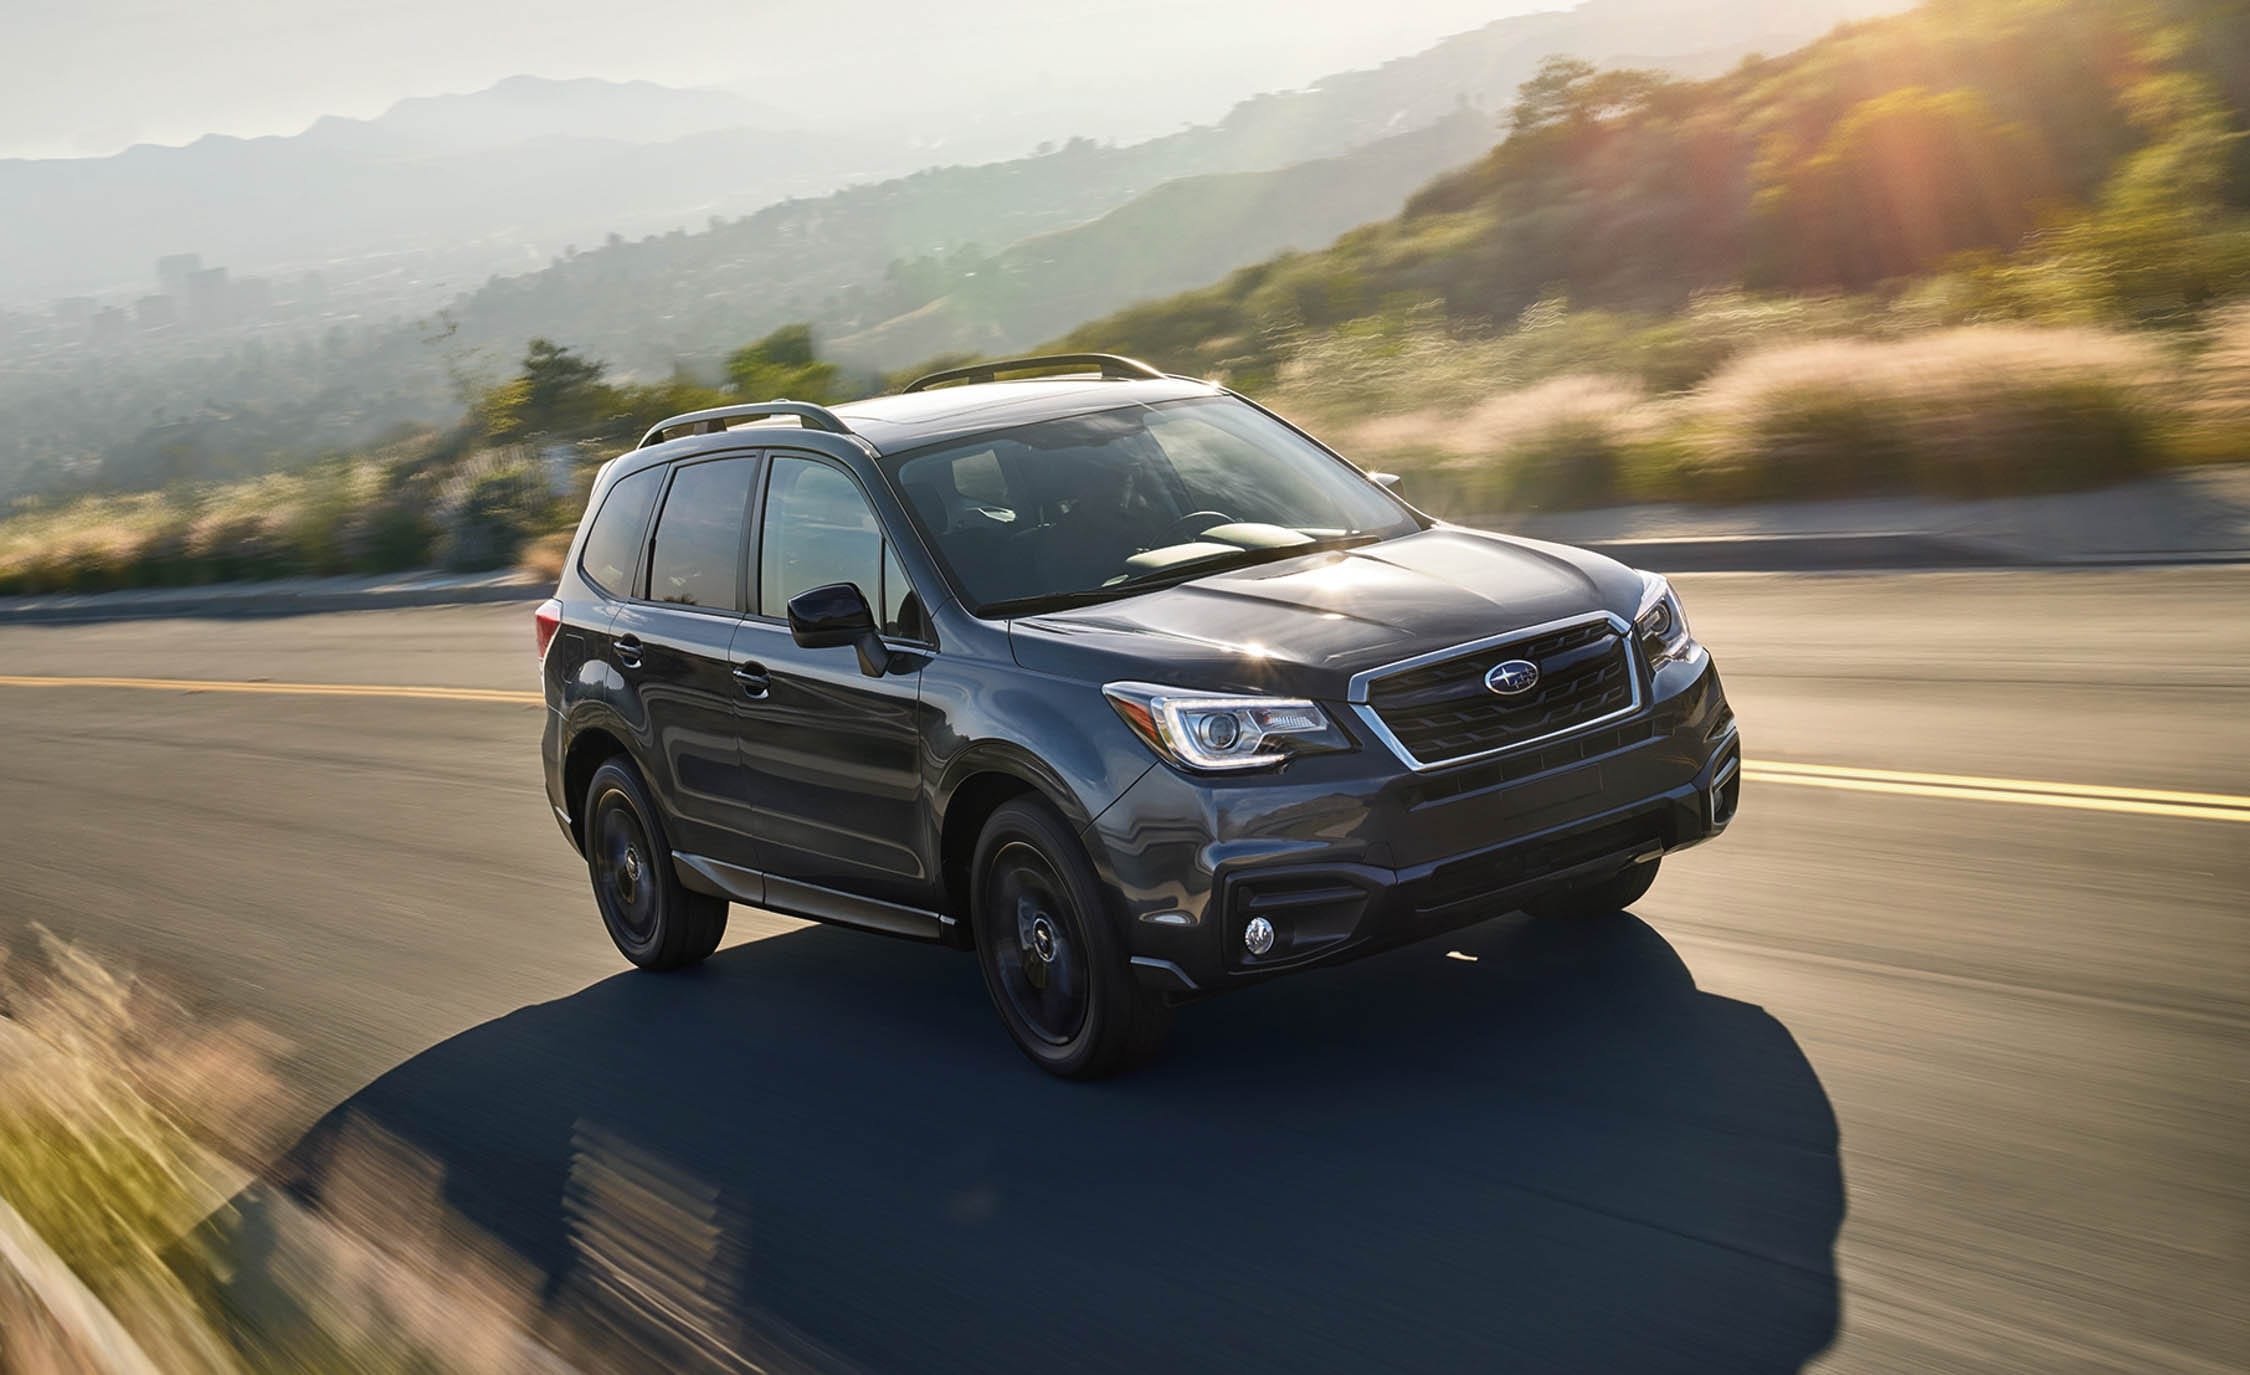 2018 Subaru Forester Lease Deals NJ